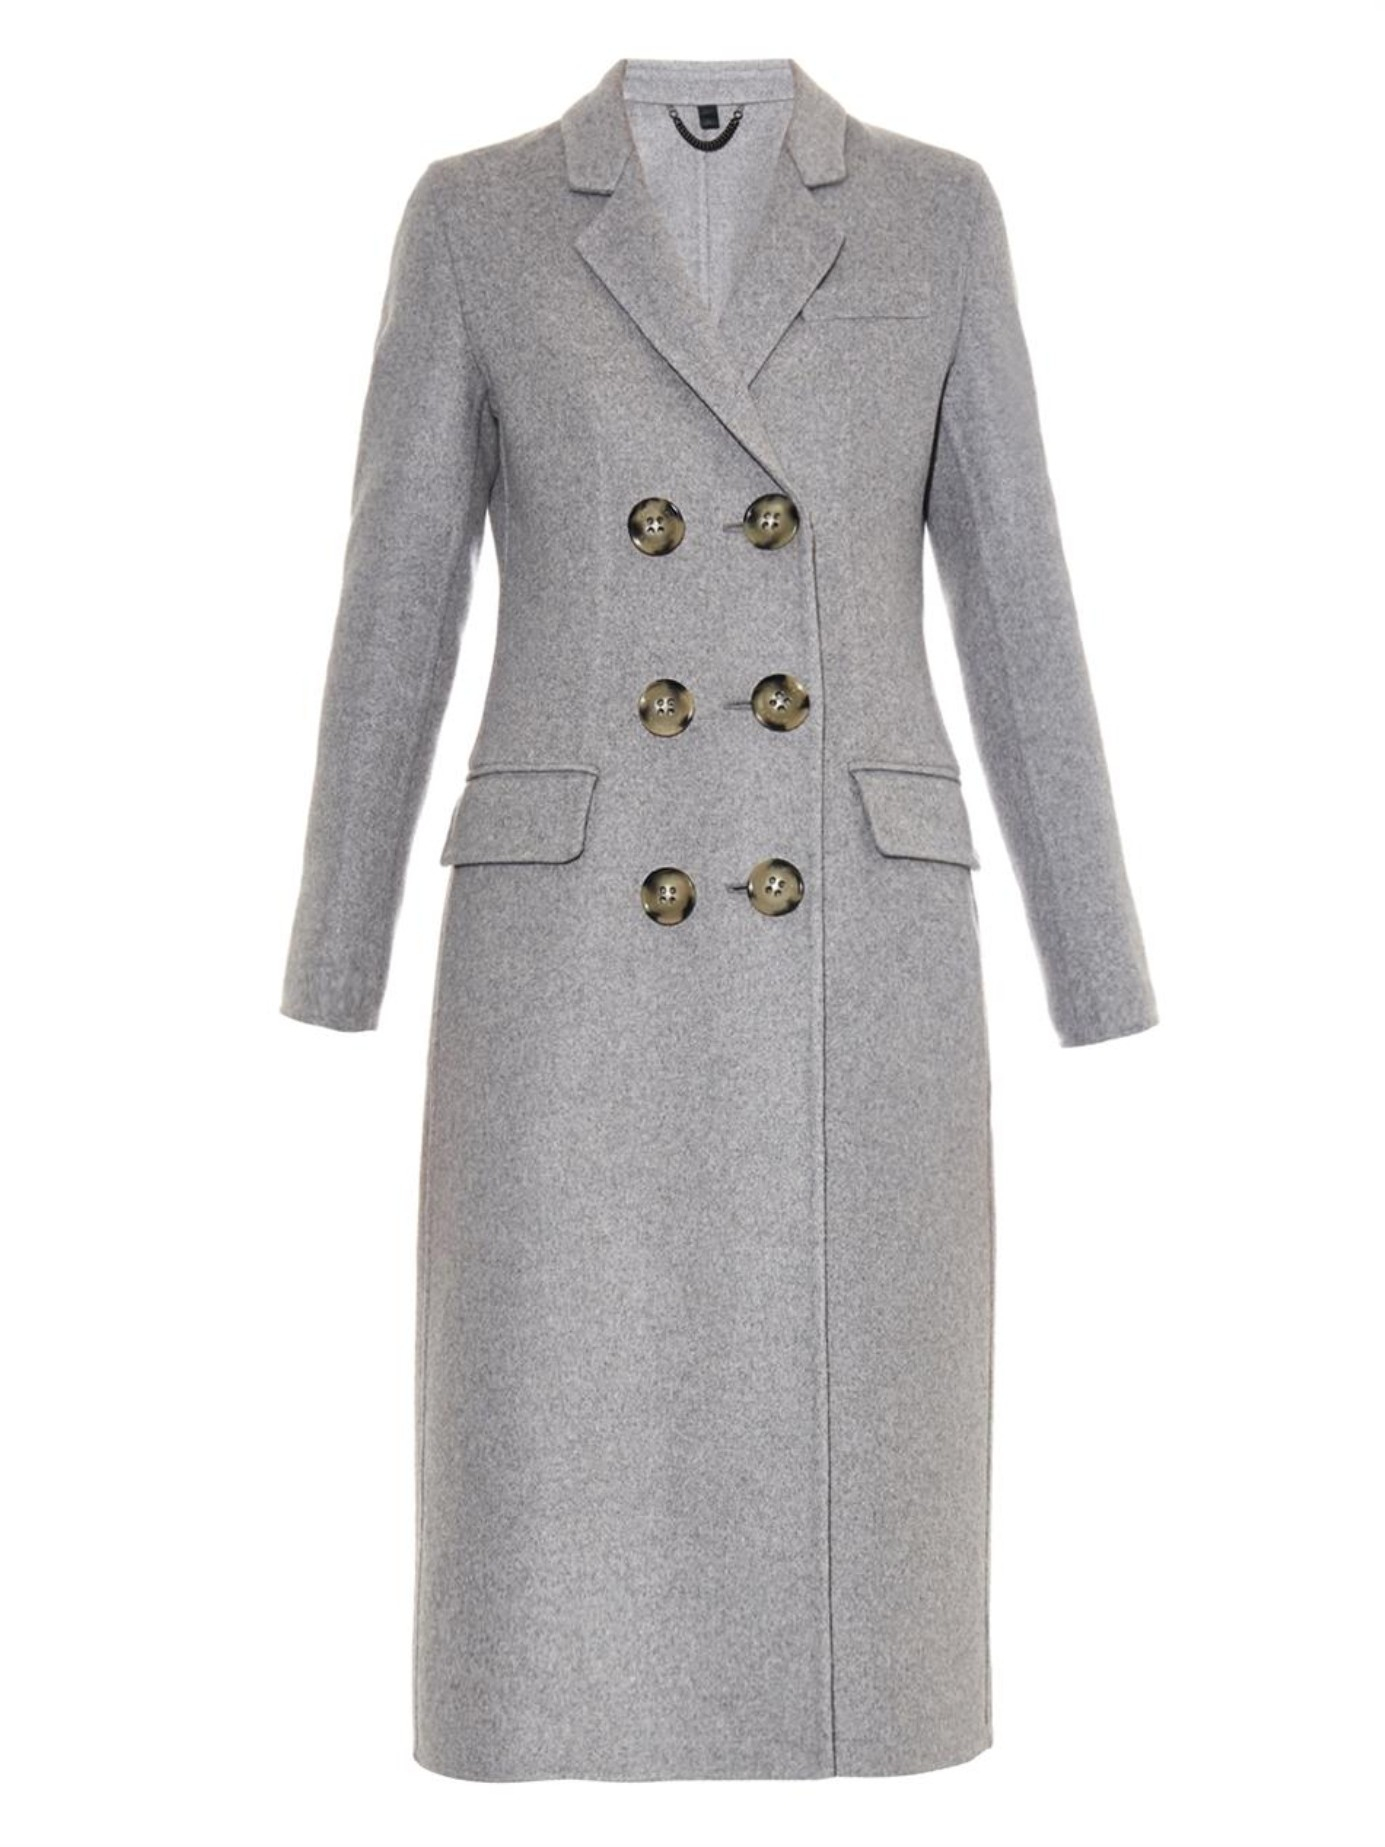 Lyst Burberry Prorsum Double Breasted Cashmere Coat In Gray